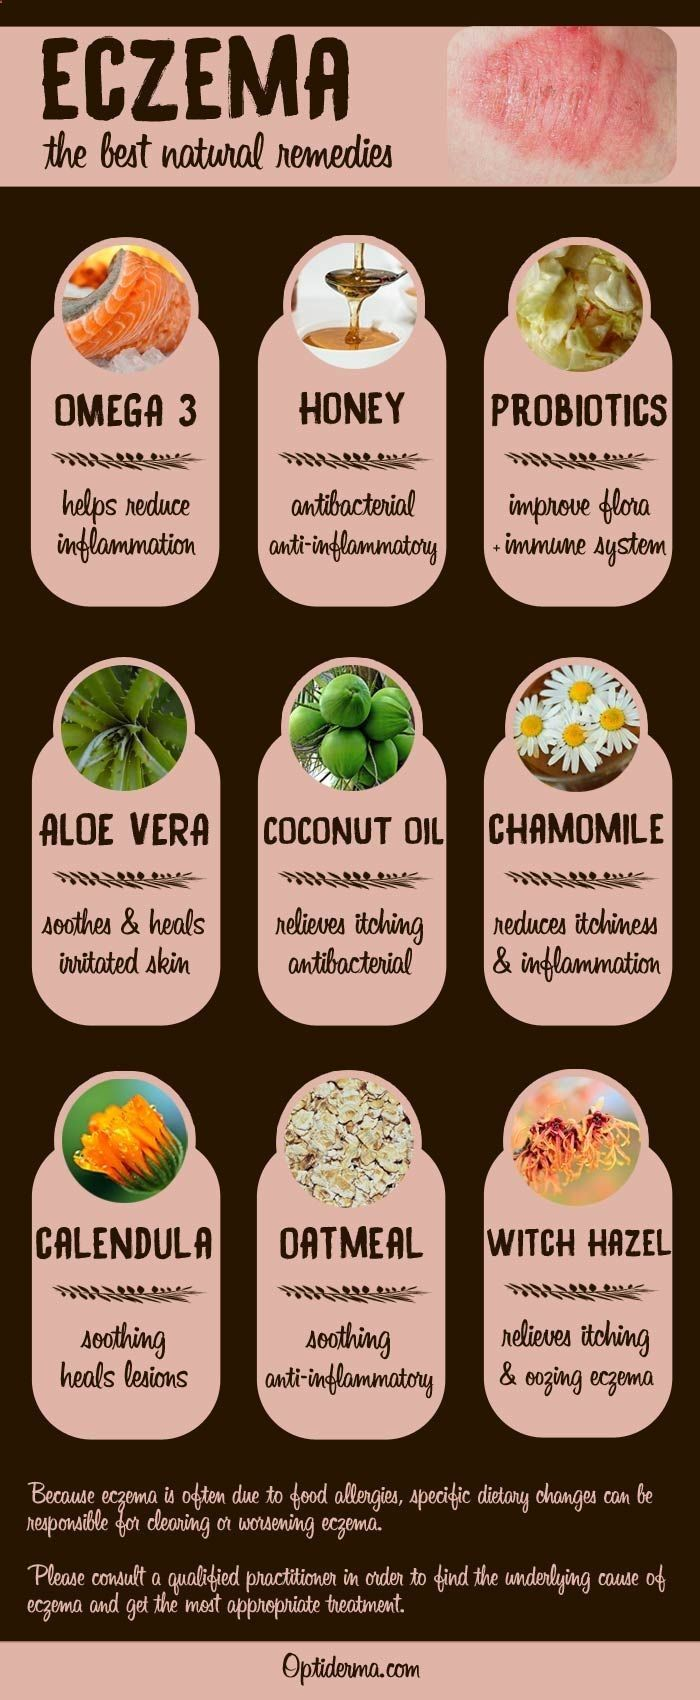 Heres a list of the best natural remedies for eczema: omega 3, honey, probiotics, aloe vera, coconut oil, chamomile, calendula, oatmeal, witch hazel. Which one to try? Check this out: www.optiderma.com...